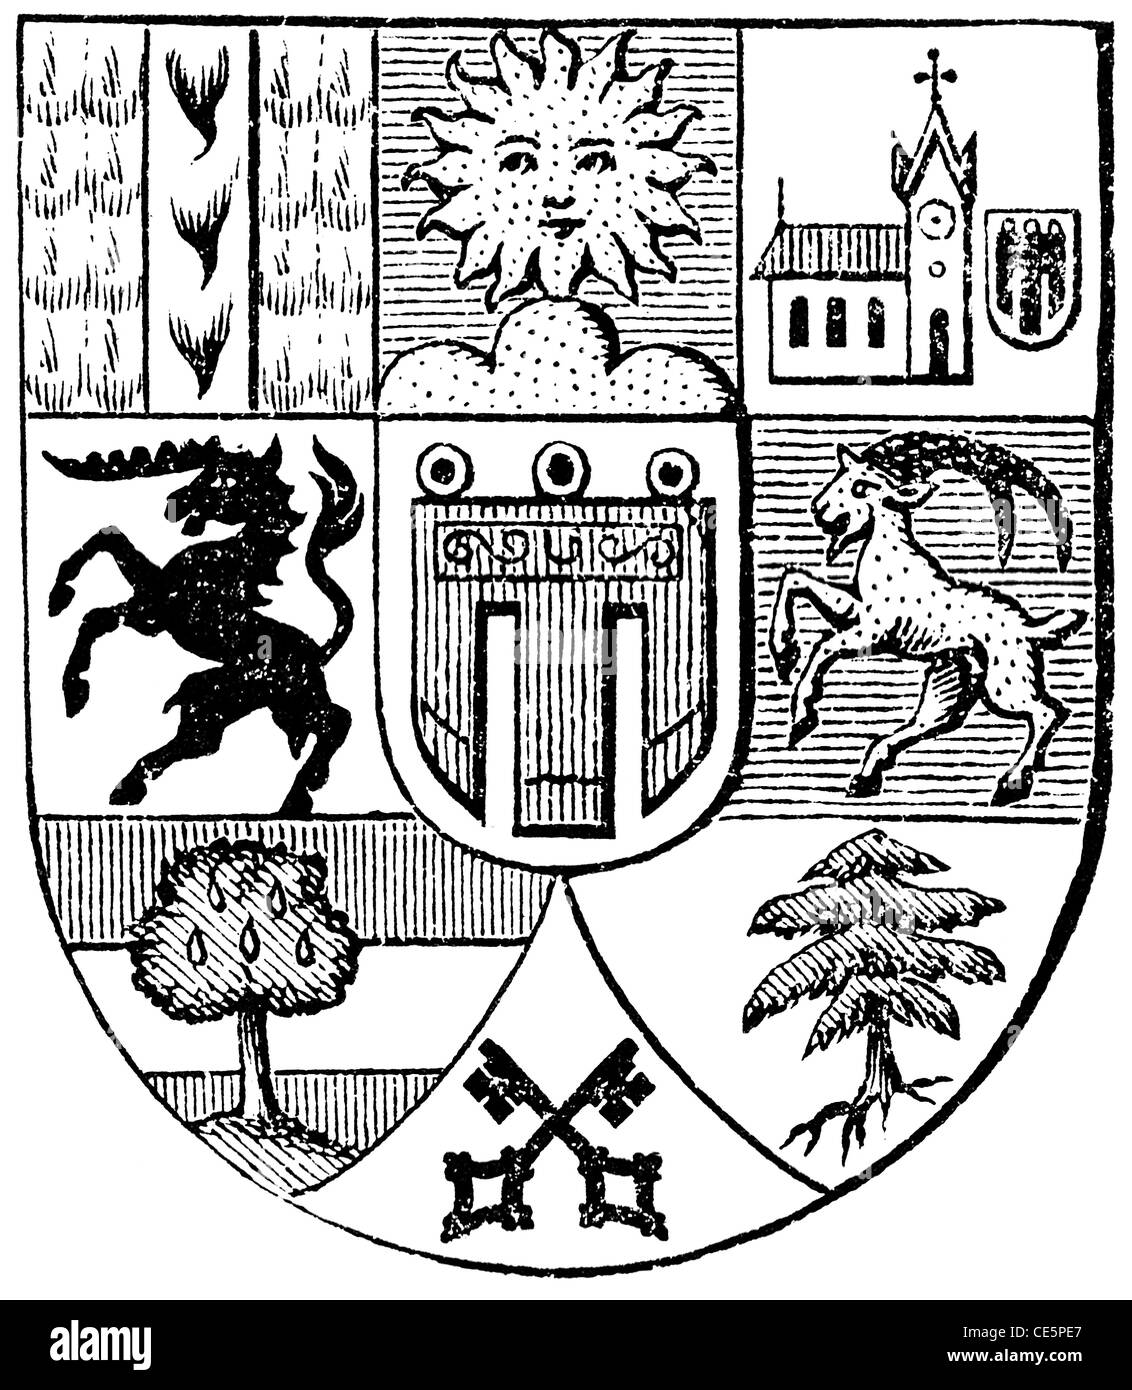 Coat of arms of Vorarlberg, (Austro-Hungarian Monarchy). - Stock Image